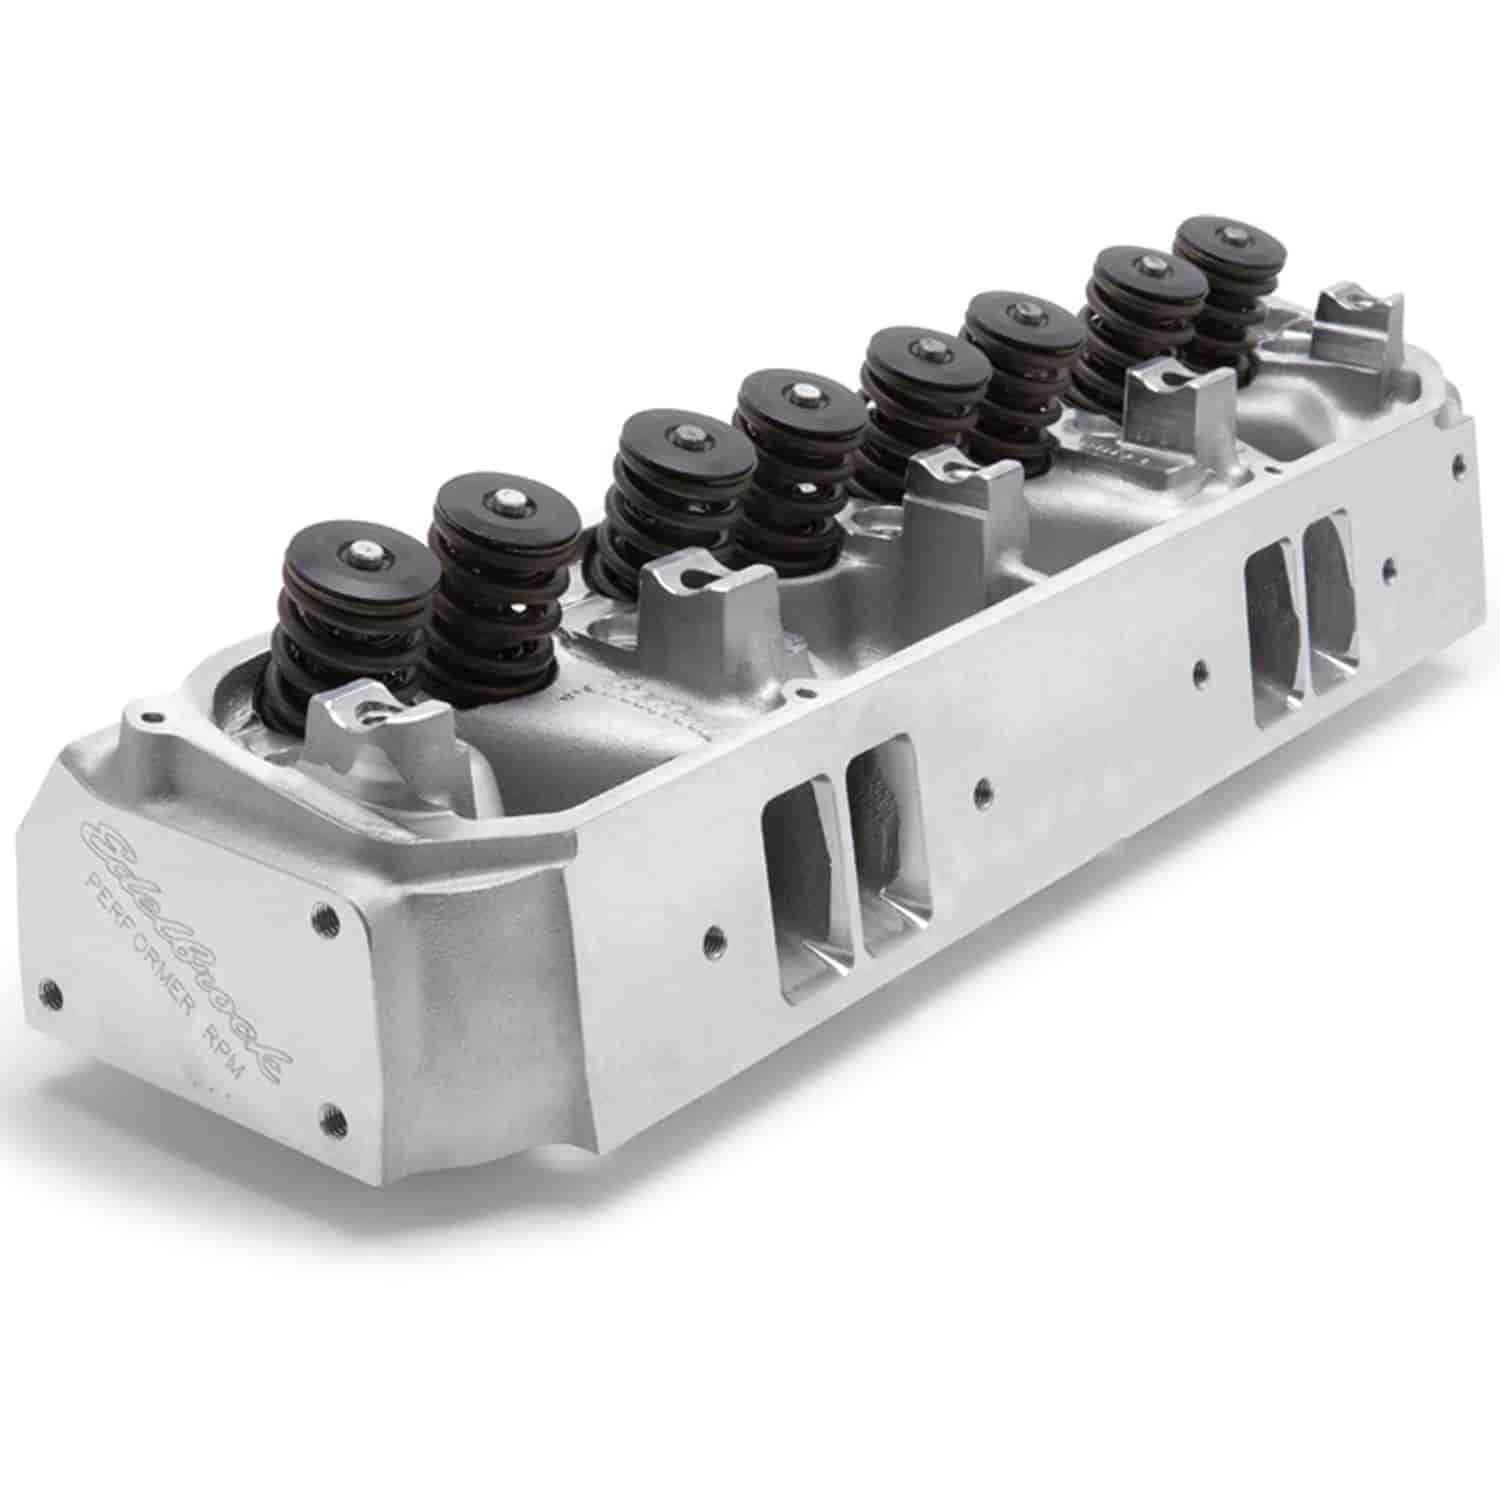 Edelbrock 60929 - Edelbrock Big Block Chrysler Performer RPM Cylinder Heads